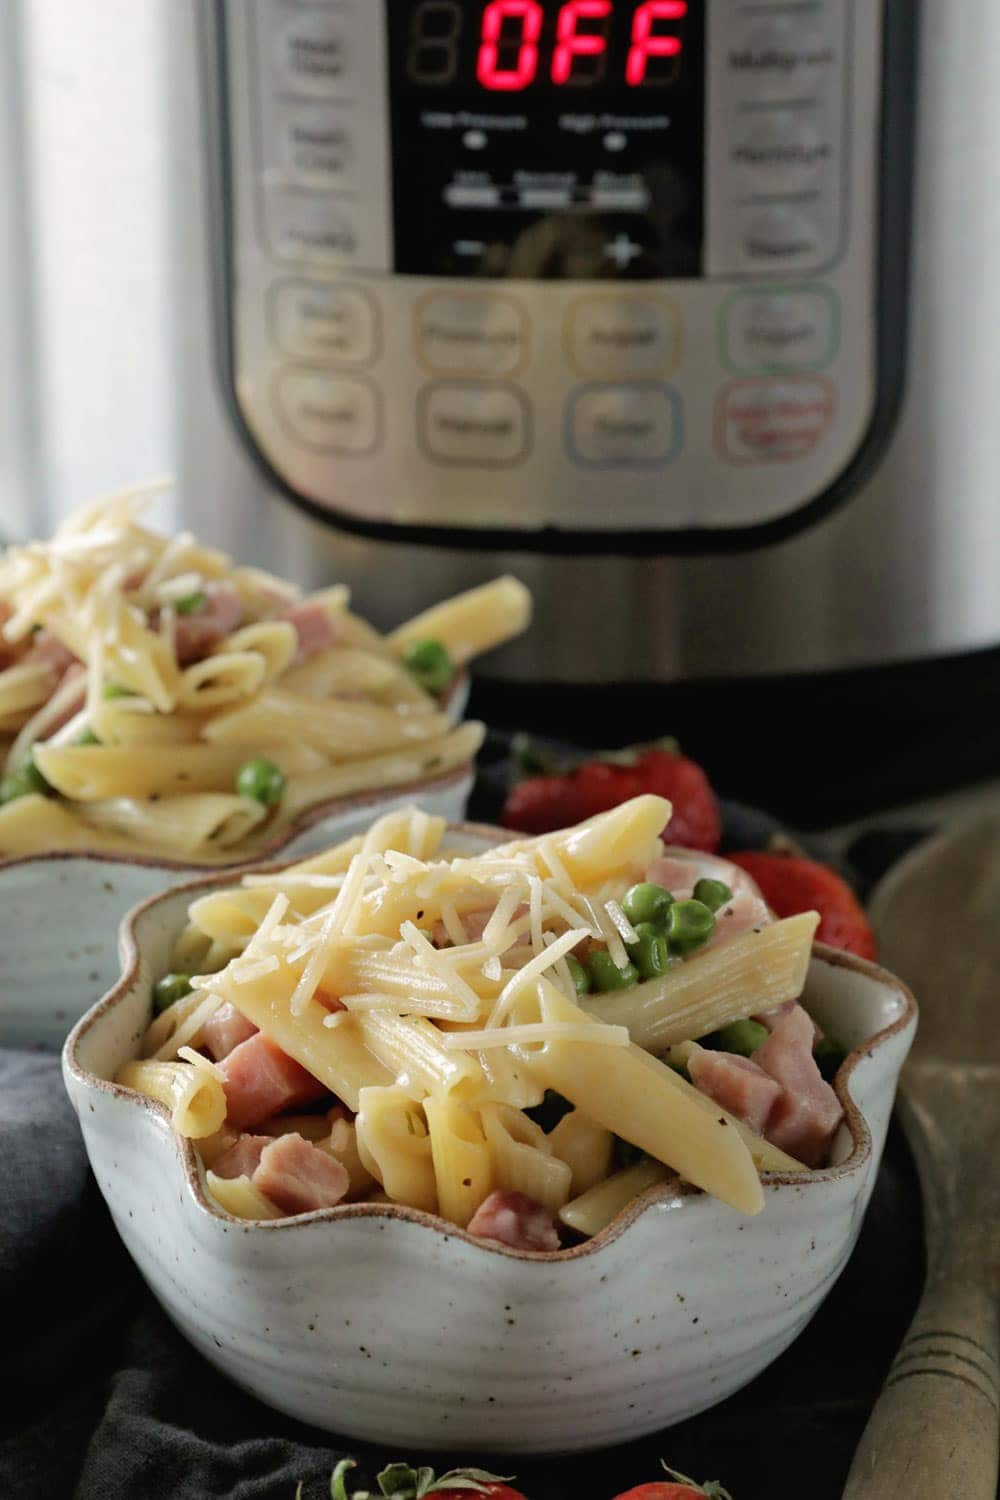 Instant Pot {Pressure Cooker} Ham & Penne Pasta ~ Our Favorite Meal Now in the Instant Pot! Only One Dish to Clean and You Have an Easy Dinner Recipe!